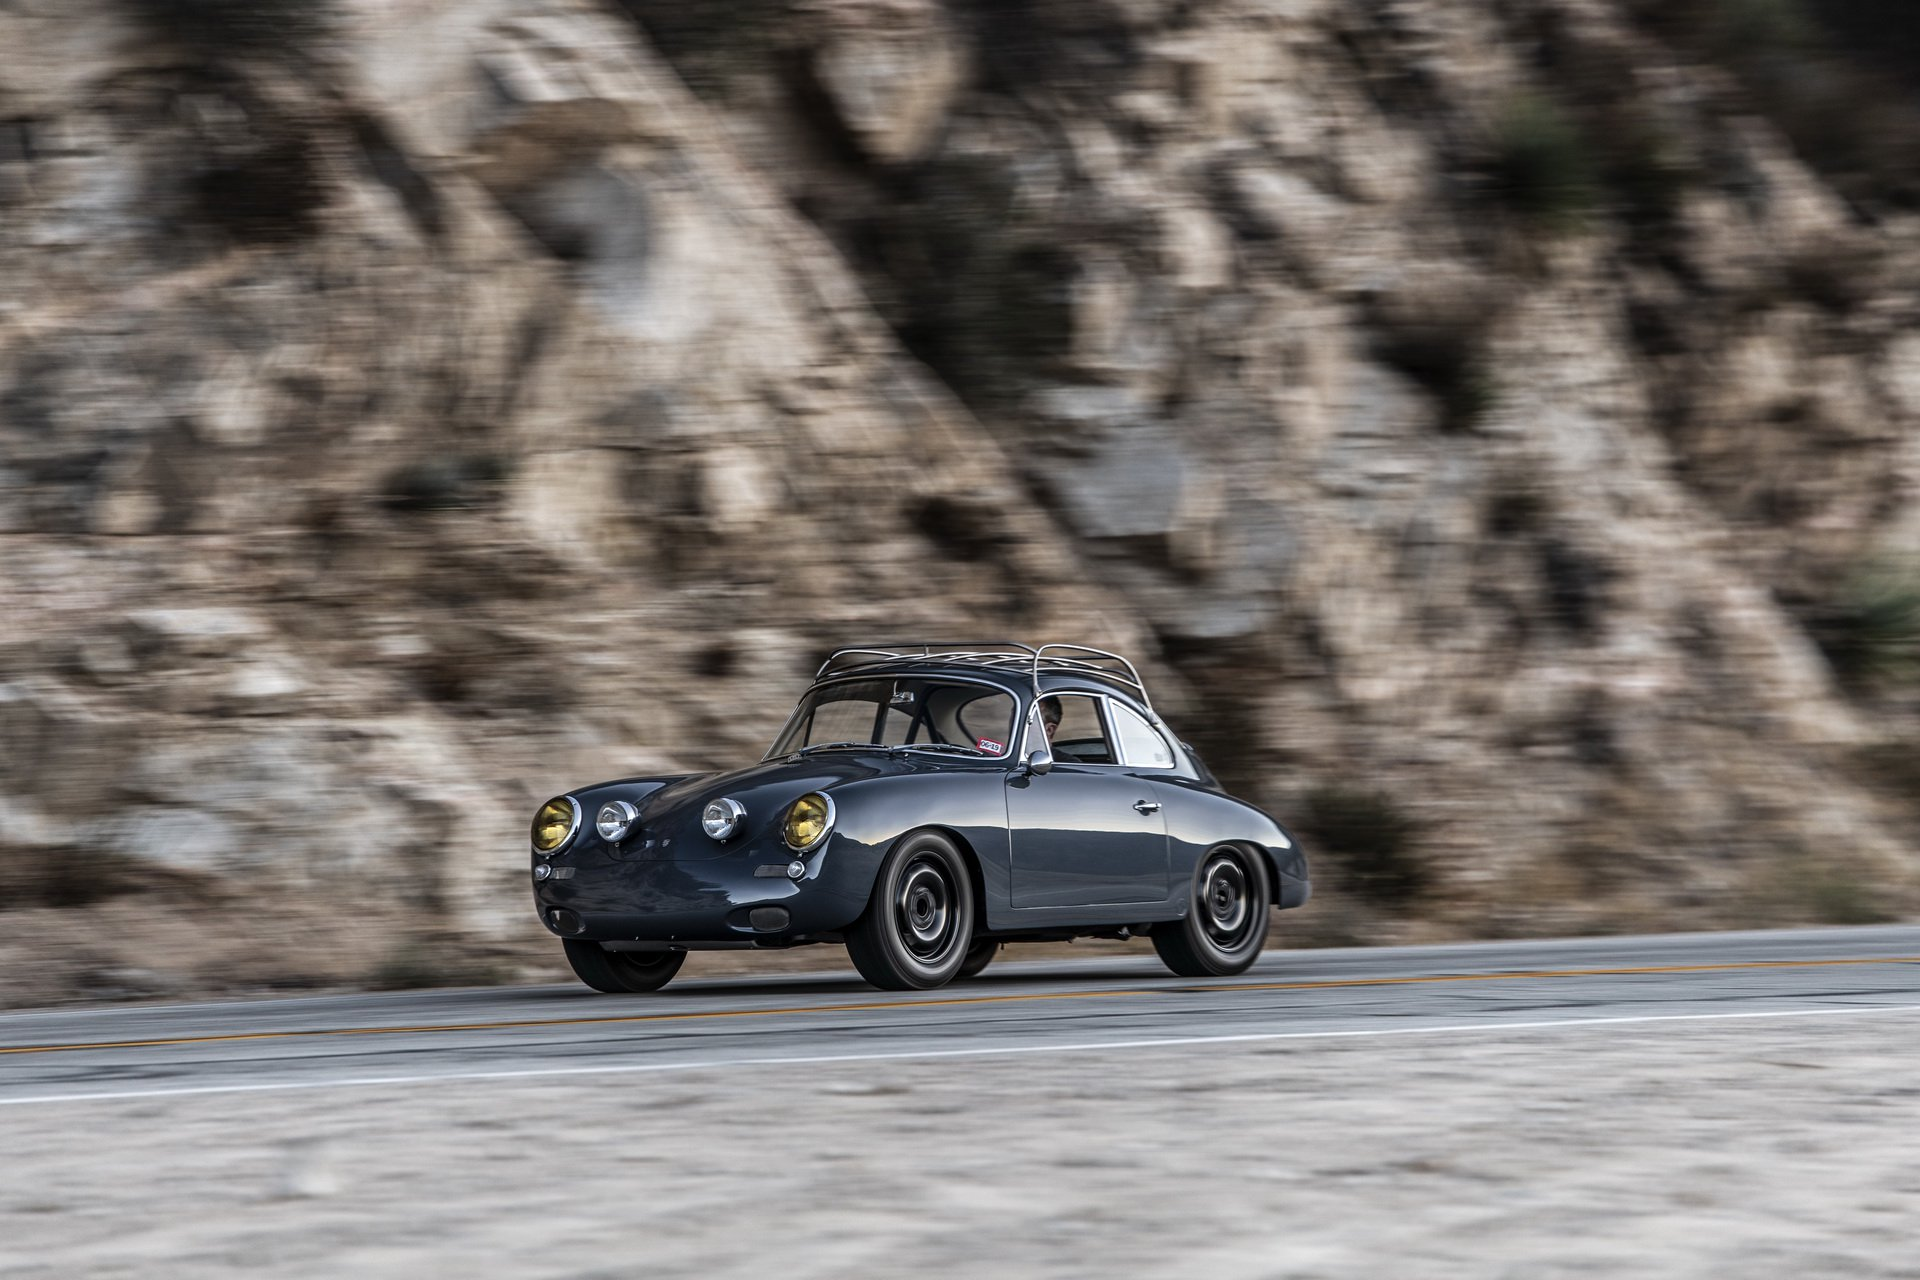 AWD Porsche 356 Coupe by Emory Motorsports (27)